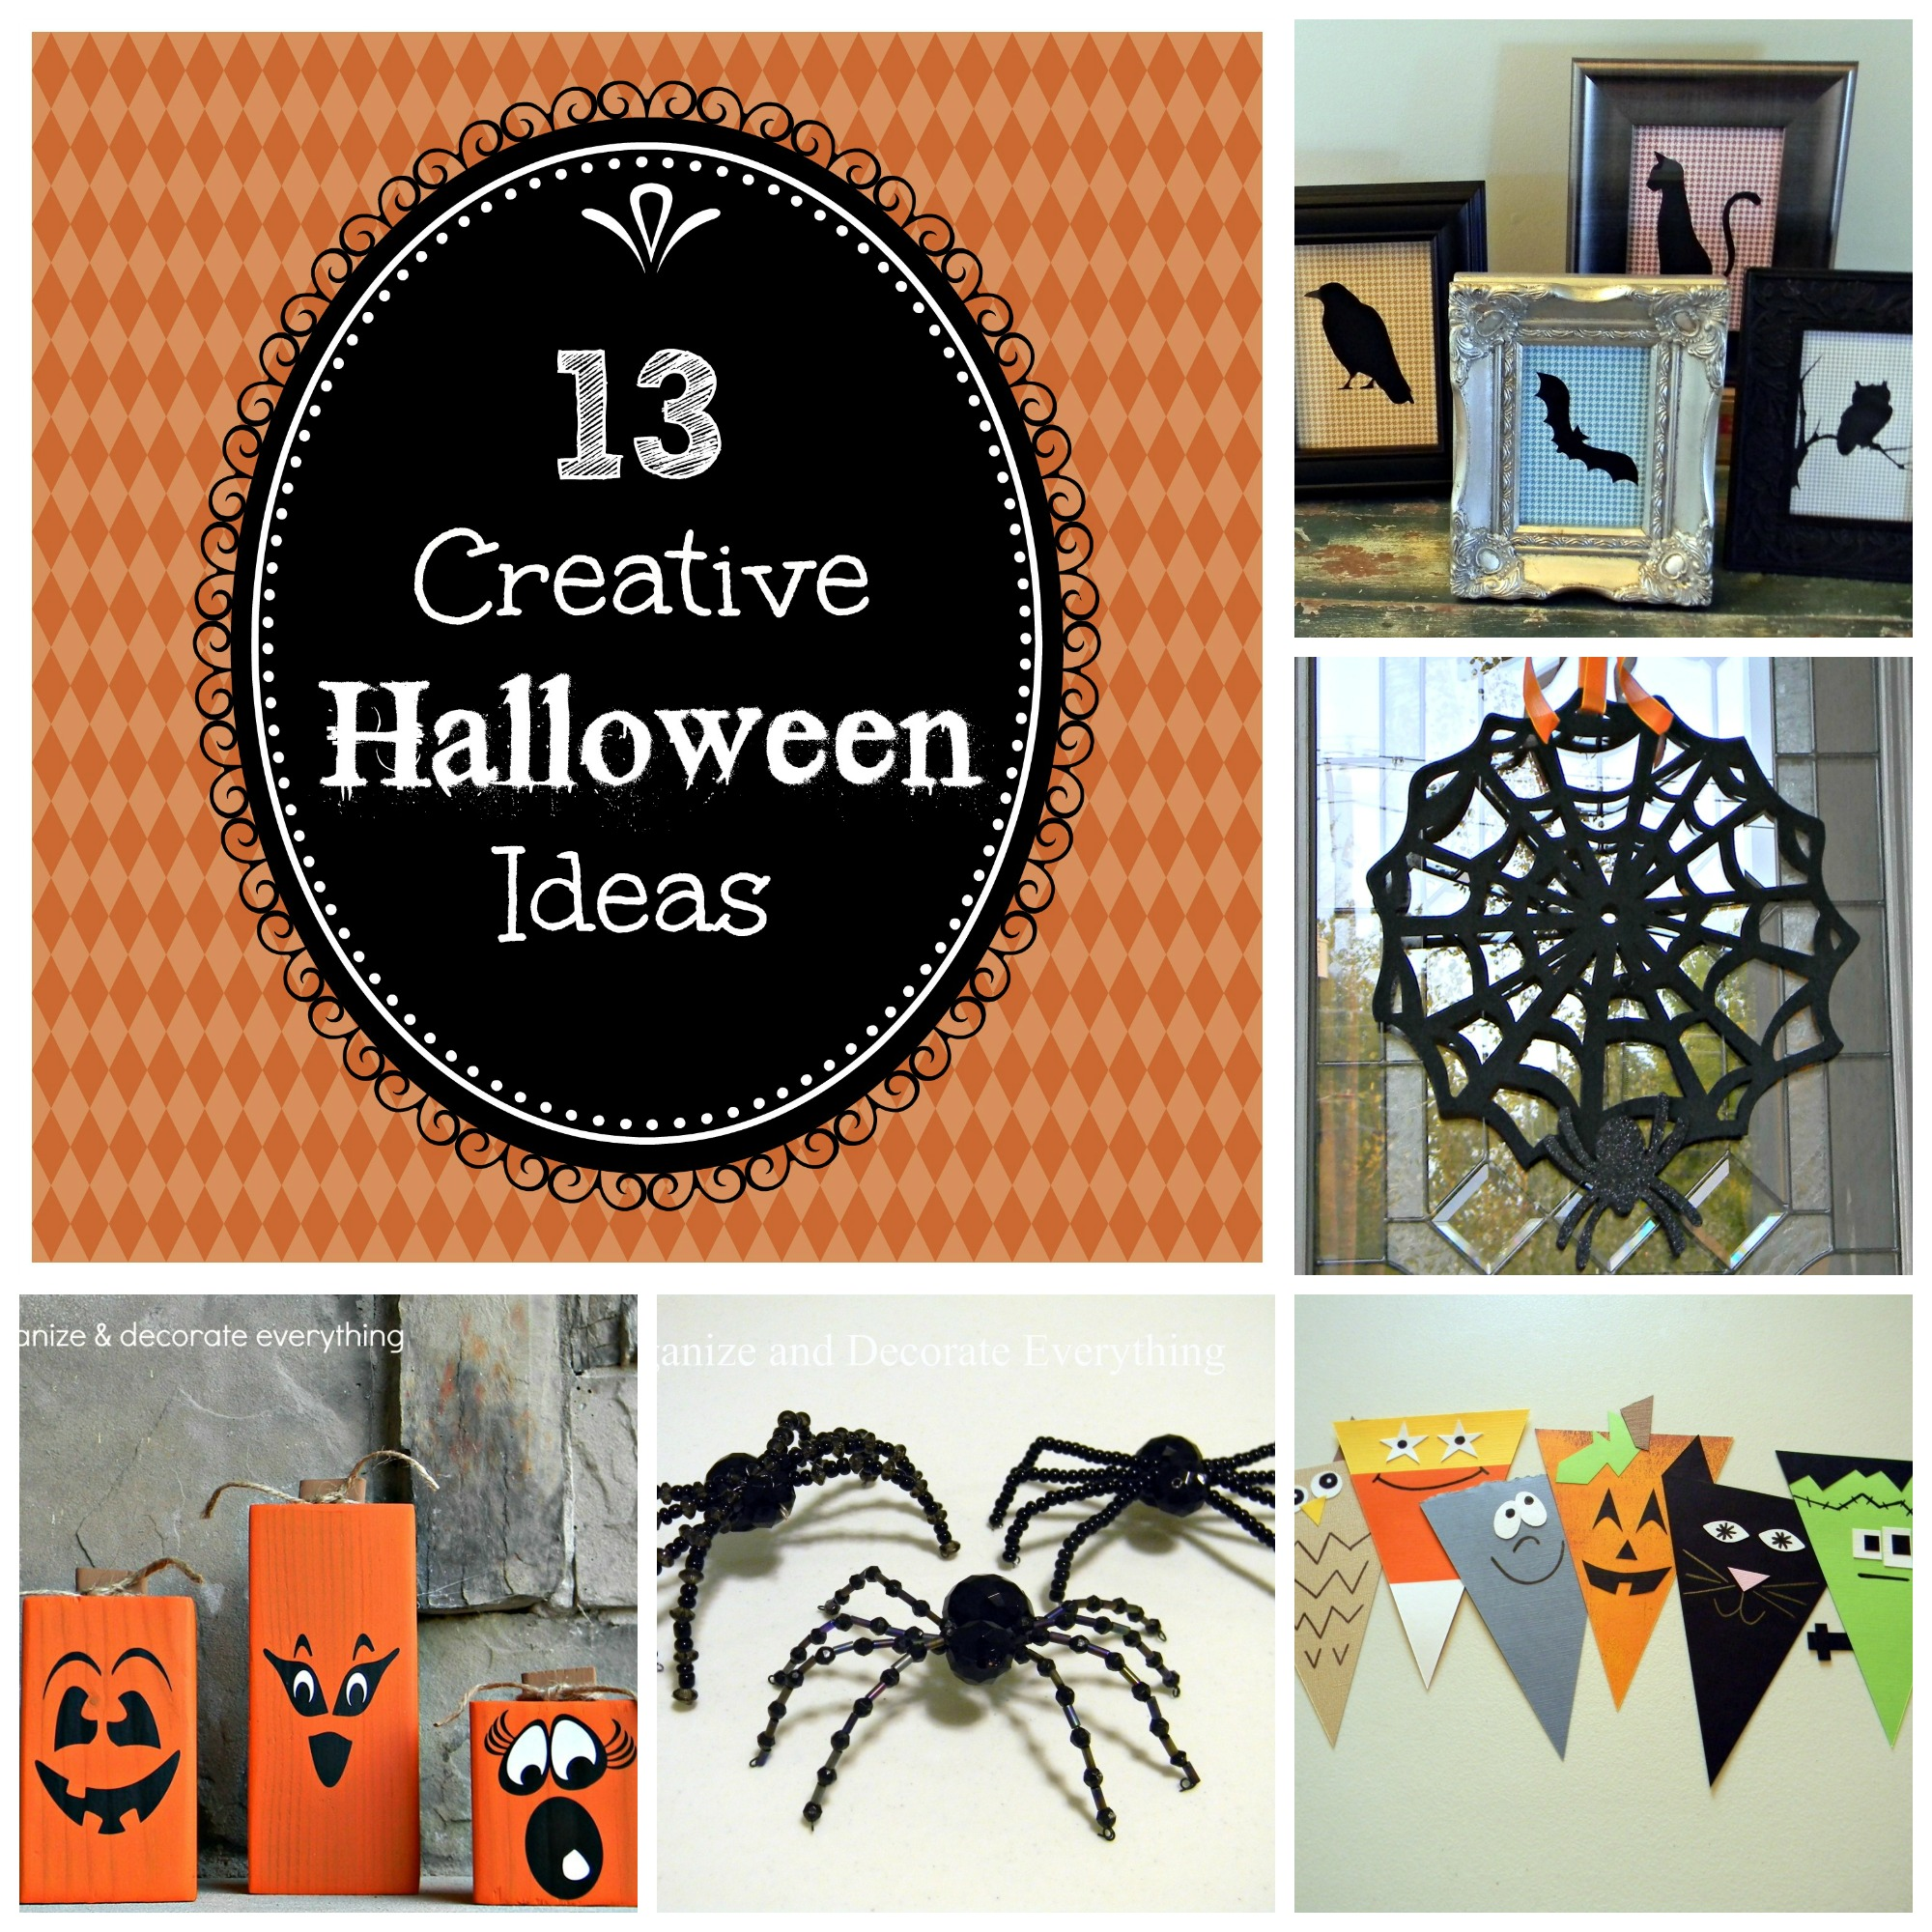 Creative Halloween Decoration Ideas: Organize And Decorate Everything